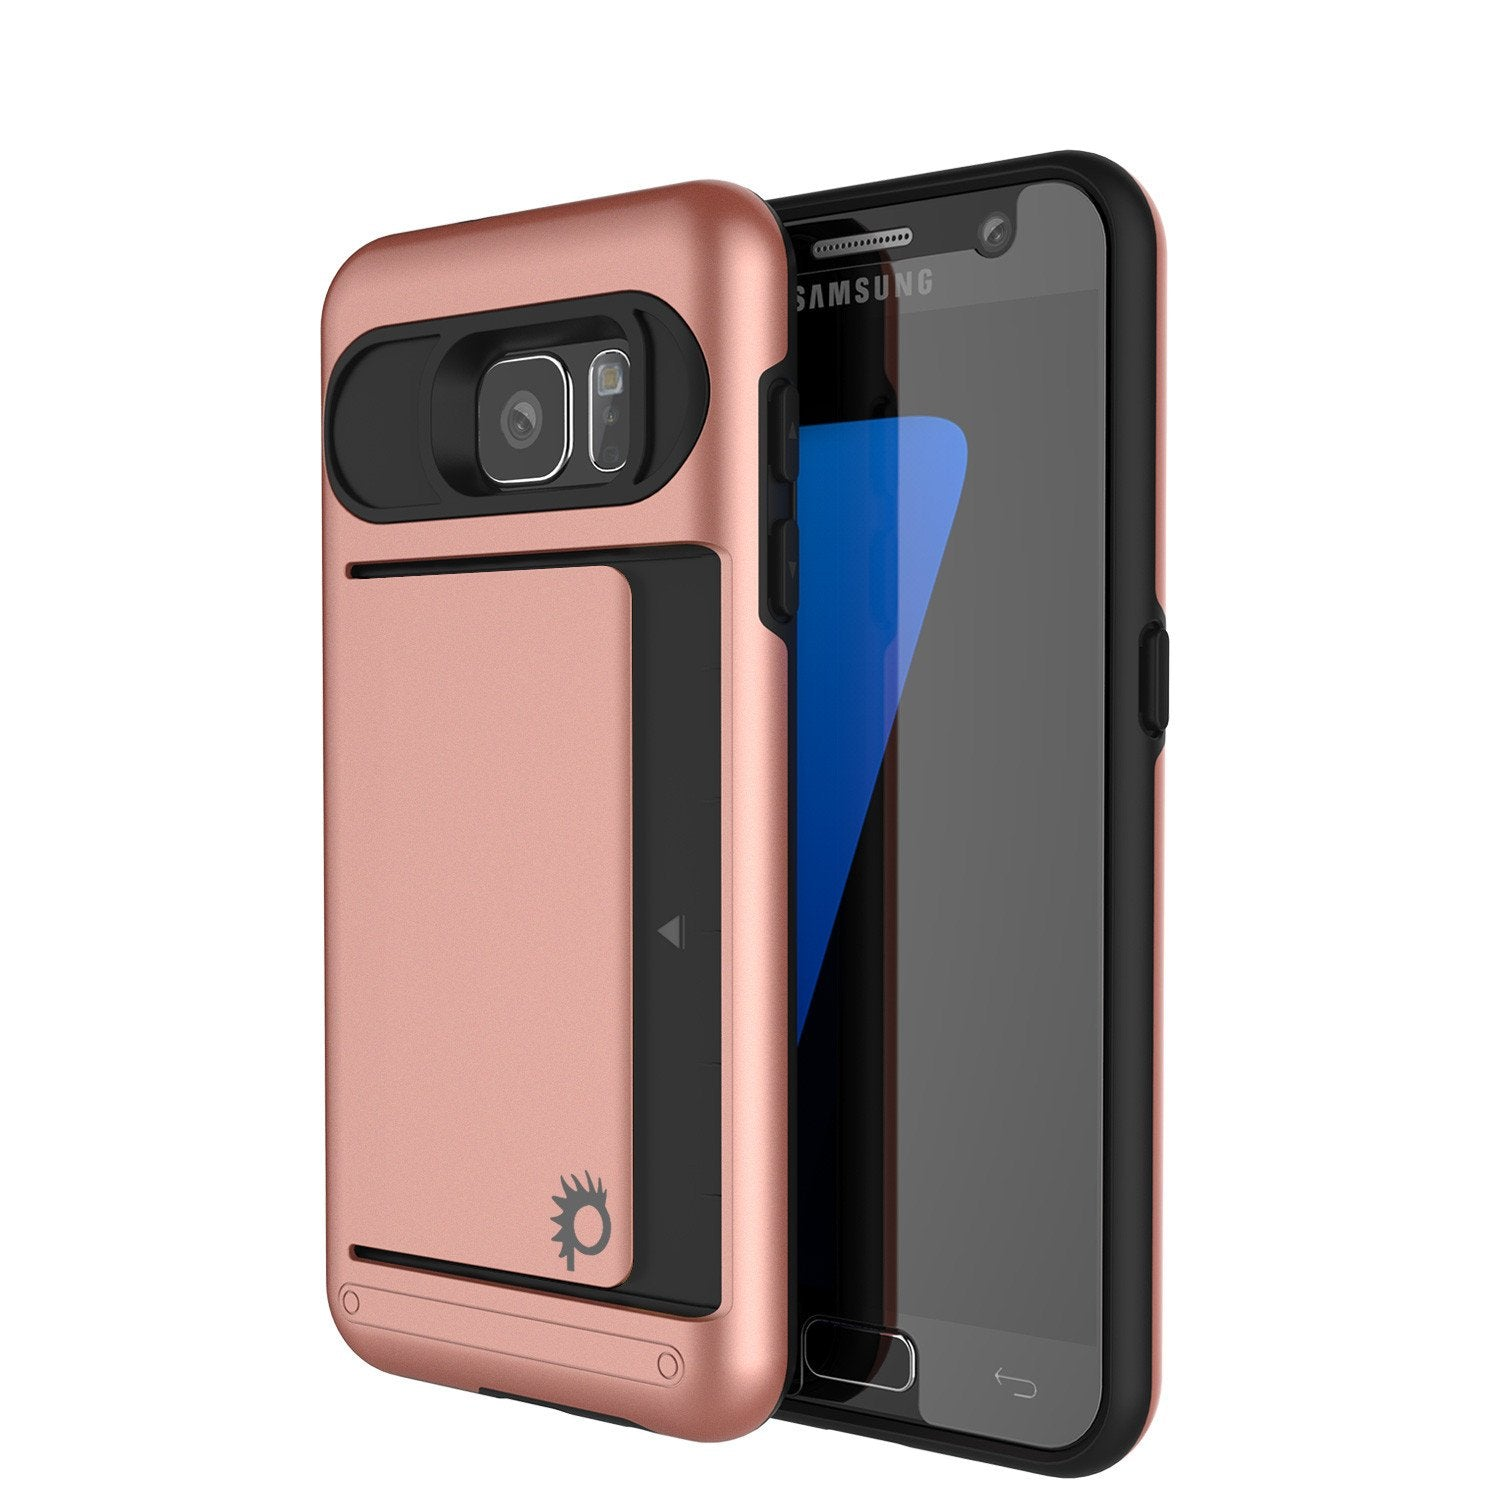 Galaxy S7 EDGE Case PunkCase CLUTCH Rose Gold Series Slim Armor Soft Cover Case w/ Screen Protector